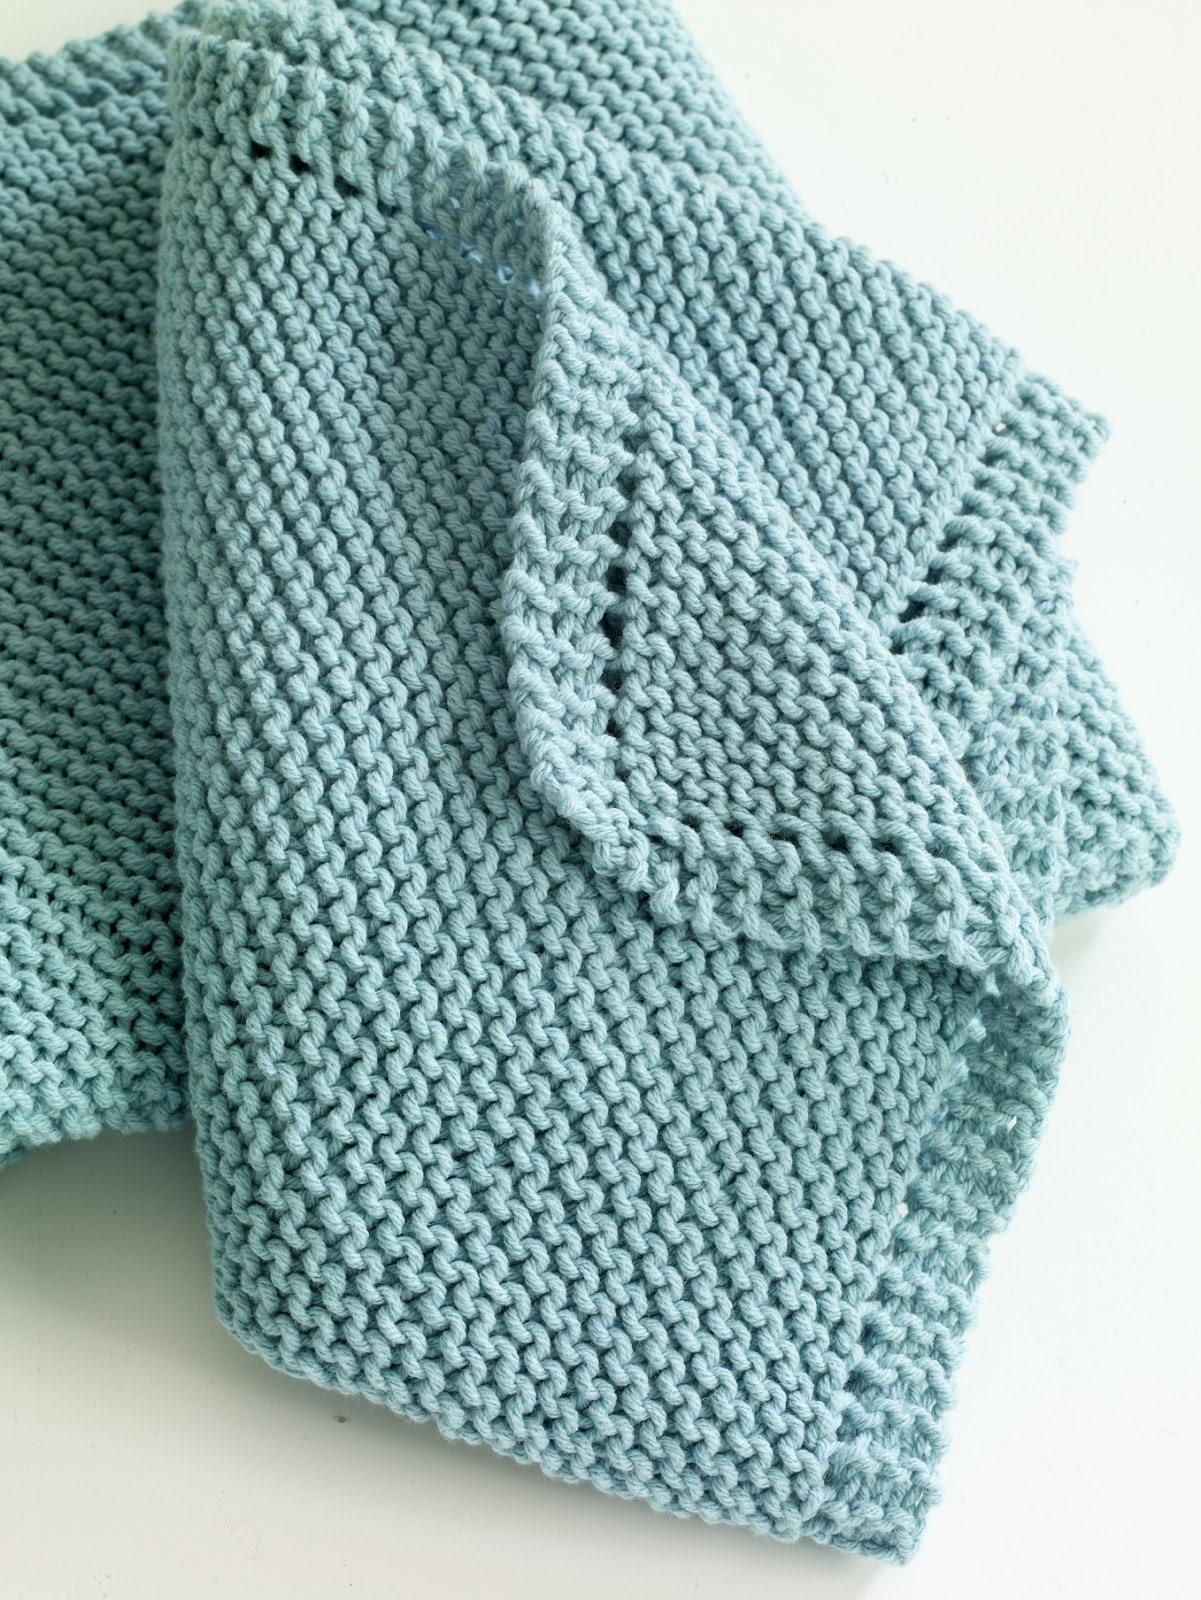 Quick And Easy Knitted Baby Blanket Patterns : Serenity Knits: December 2012